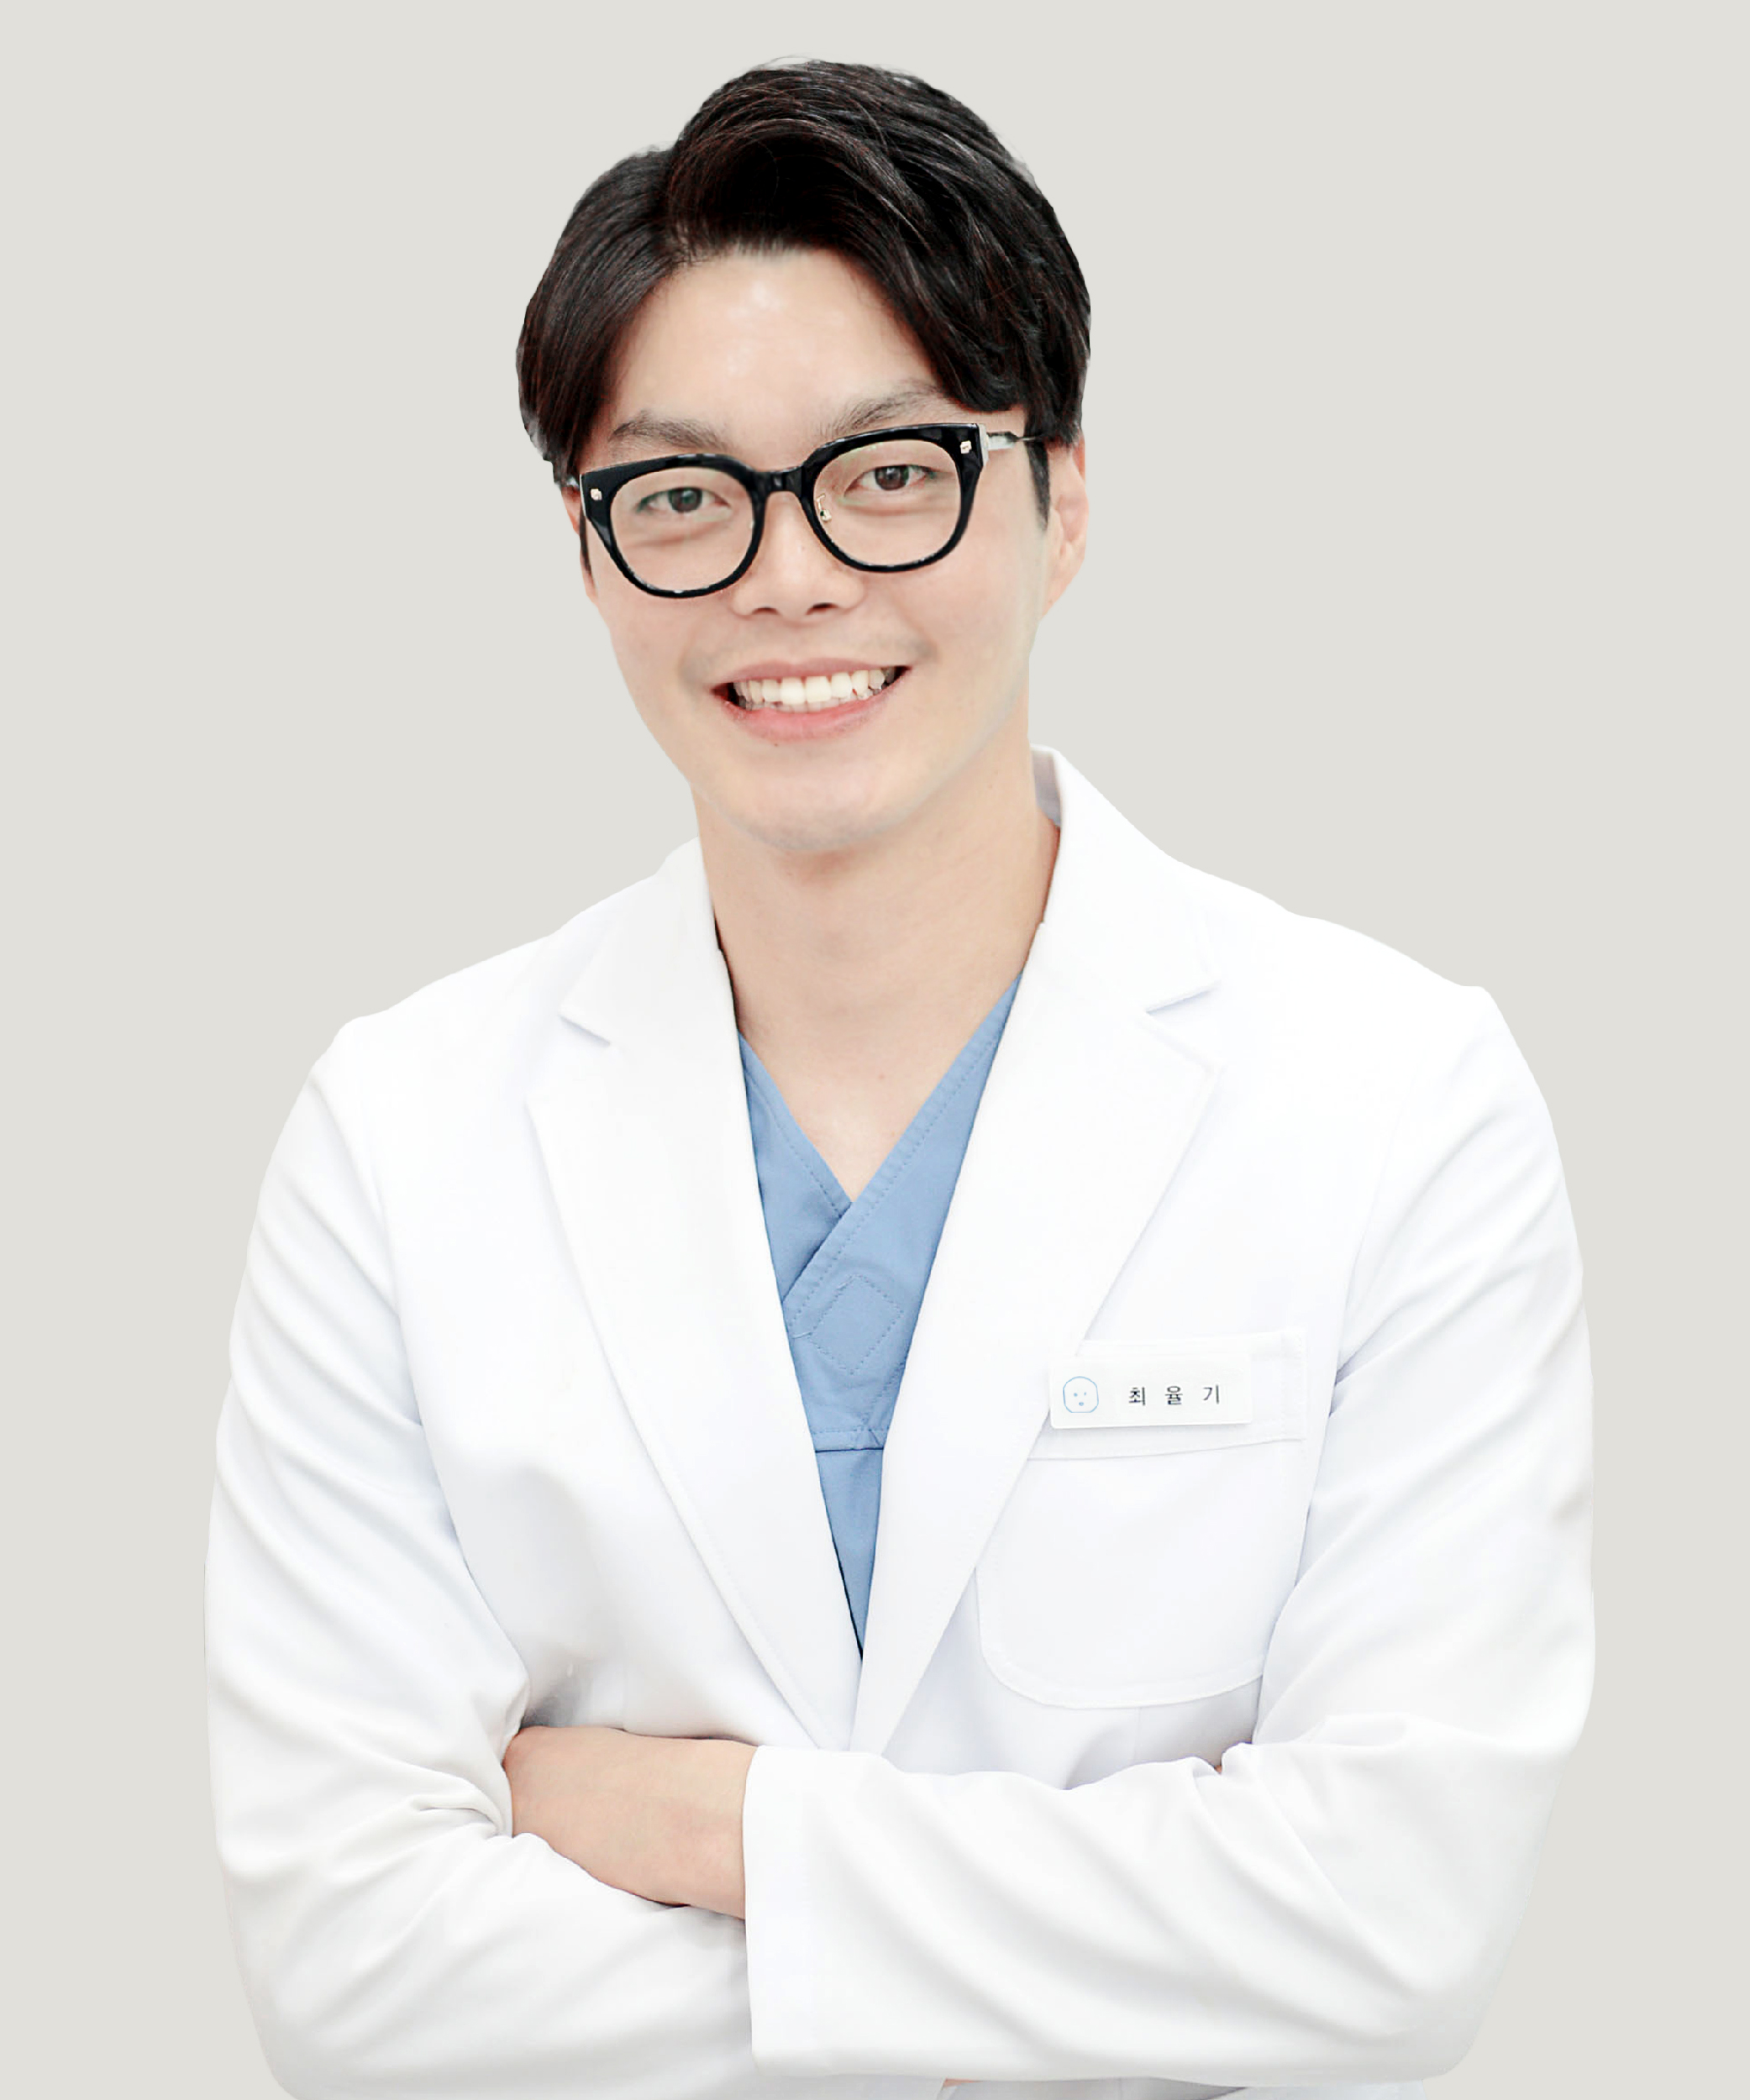 http://bfdentistry.com.vn/wp-content/uploads/2020/12/choi-yul-gi.jpg